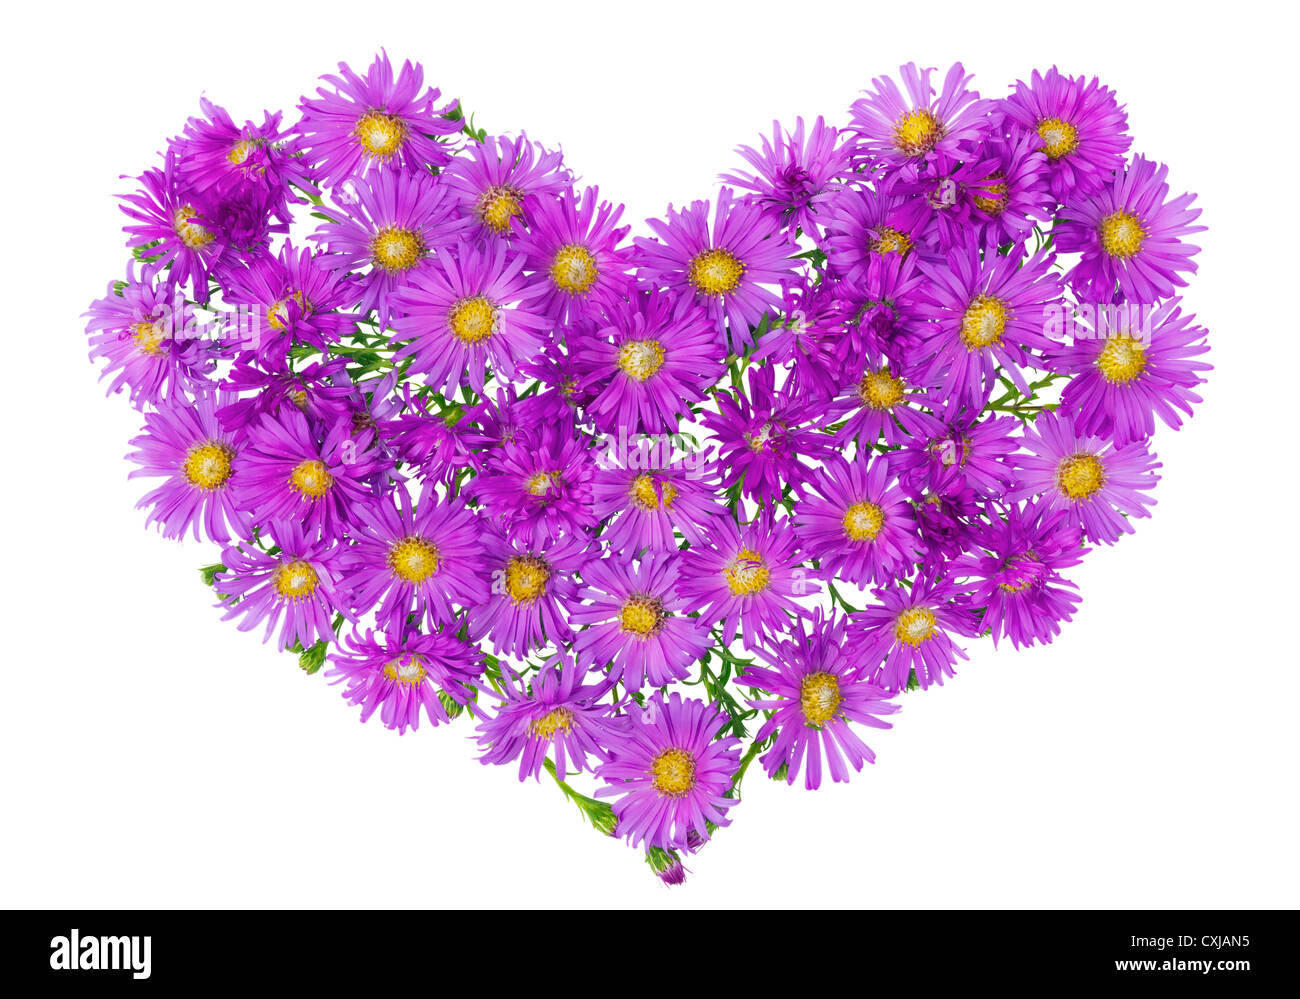 Heart floral symbol from autumn magenta chrysanthemums flowers background. Isolated - Stock Image